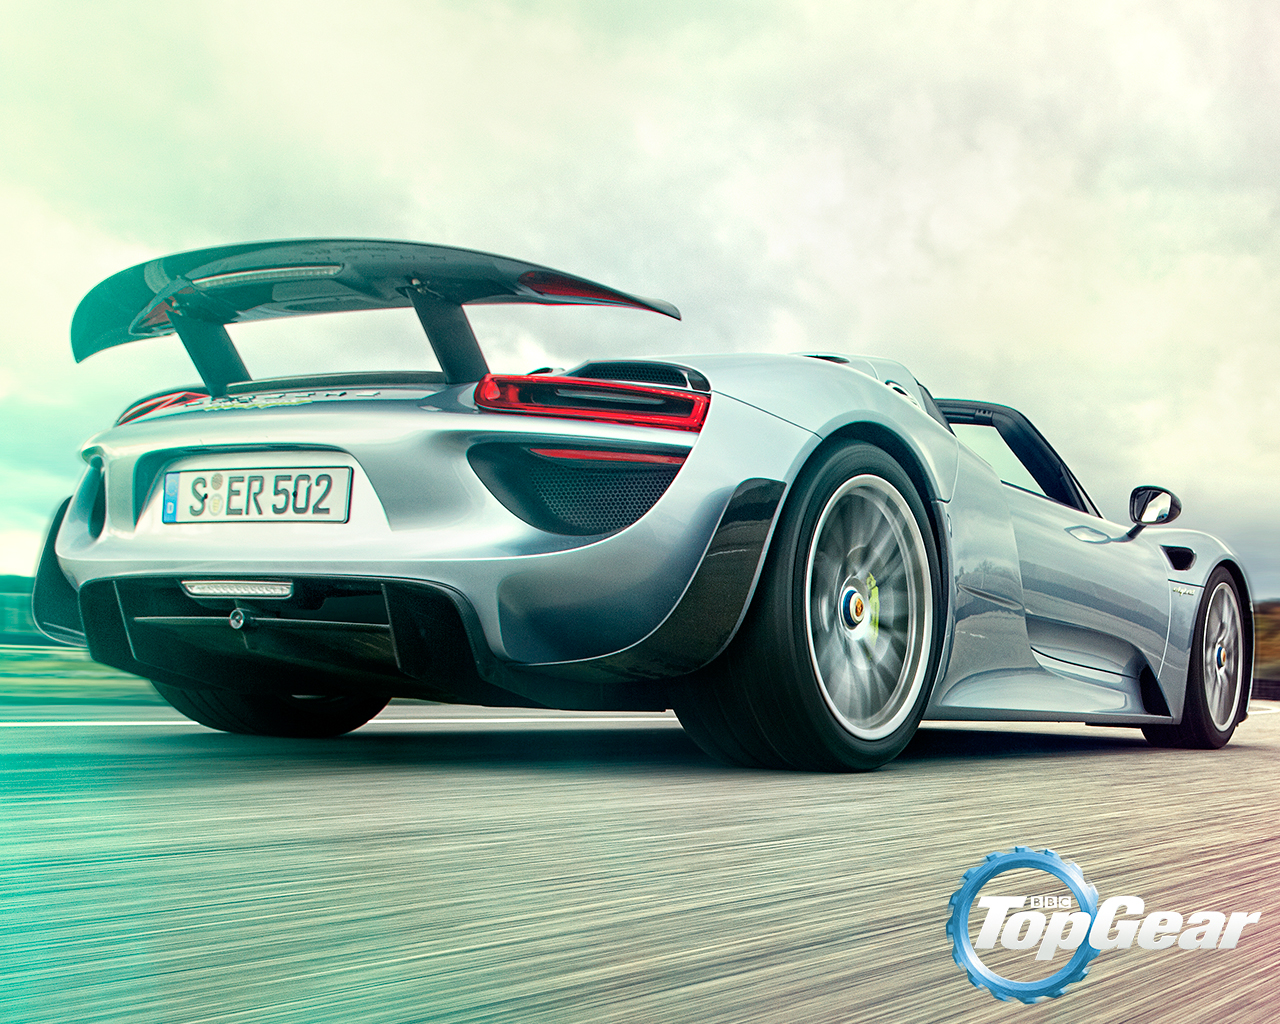 porsche 918 spyder top gear wallpapers the porsche 918 spyder bbc top gear classified of the. Black Bedroom Furniture Sets. Home Design Ideas